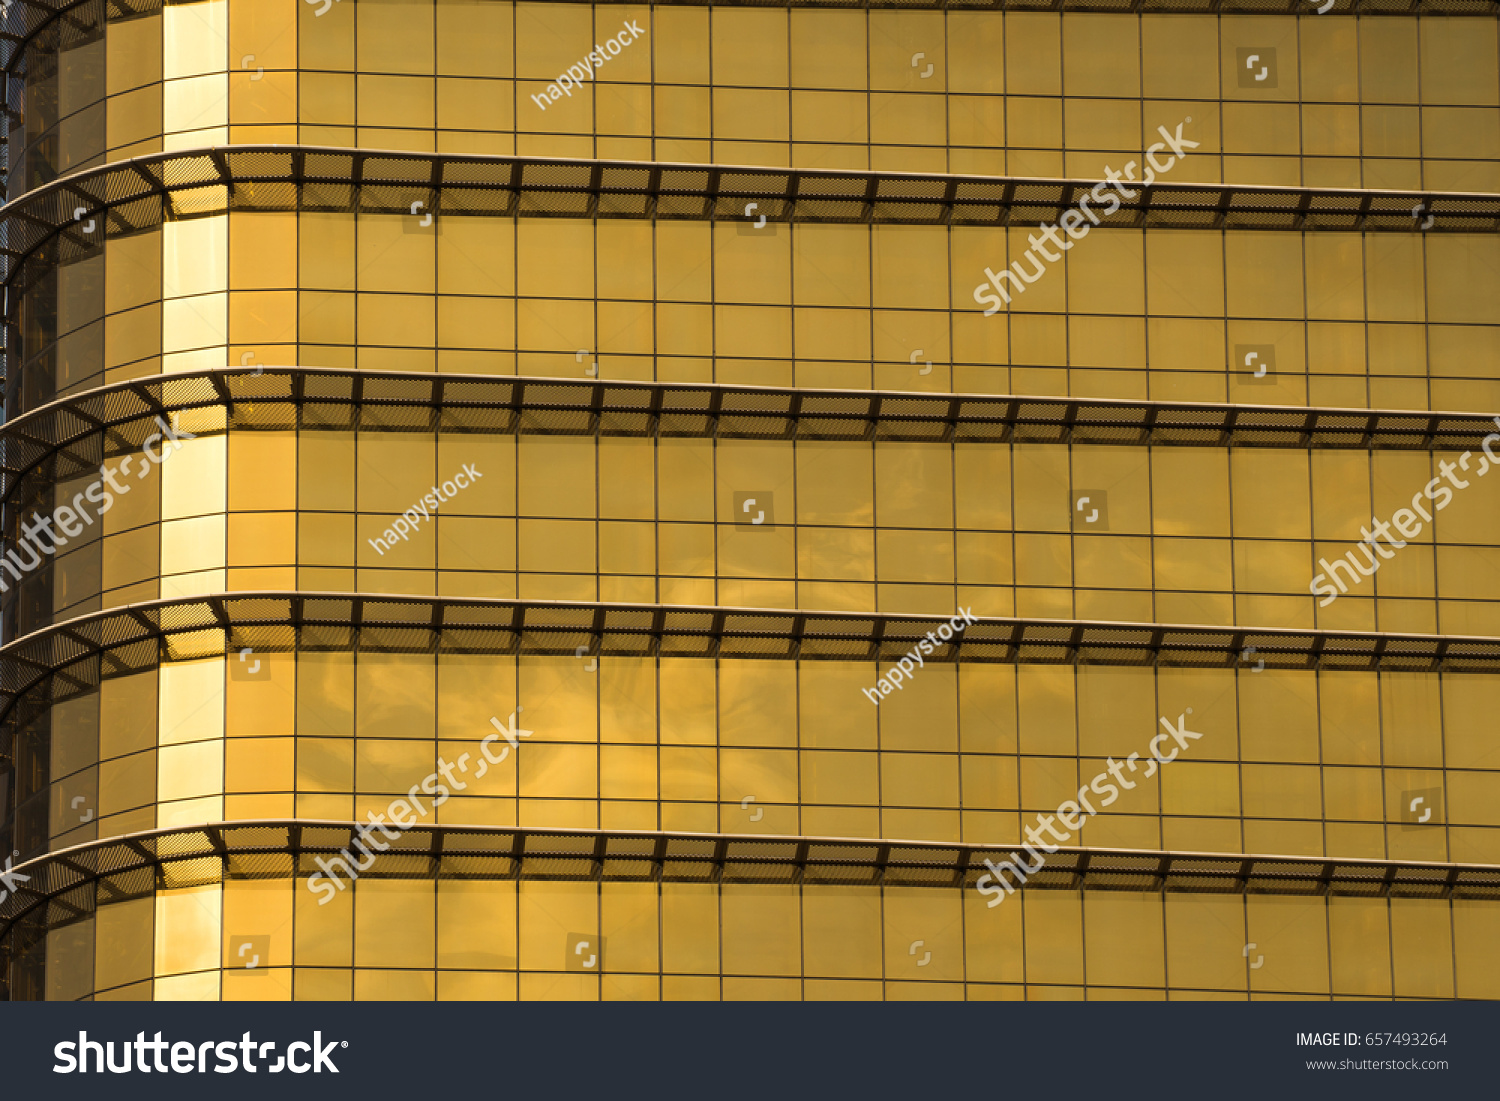 Yellow Gold Mirror Glass Building Exterior Stock Photo Edit Now 657493264